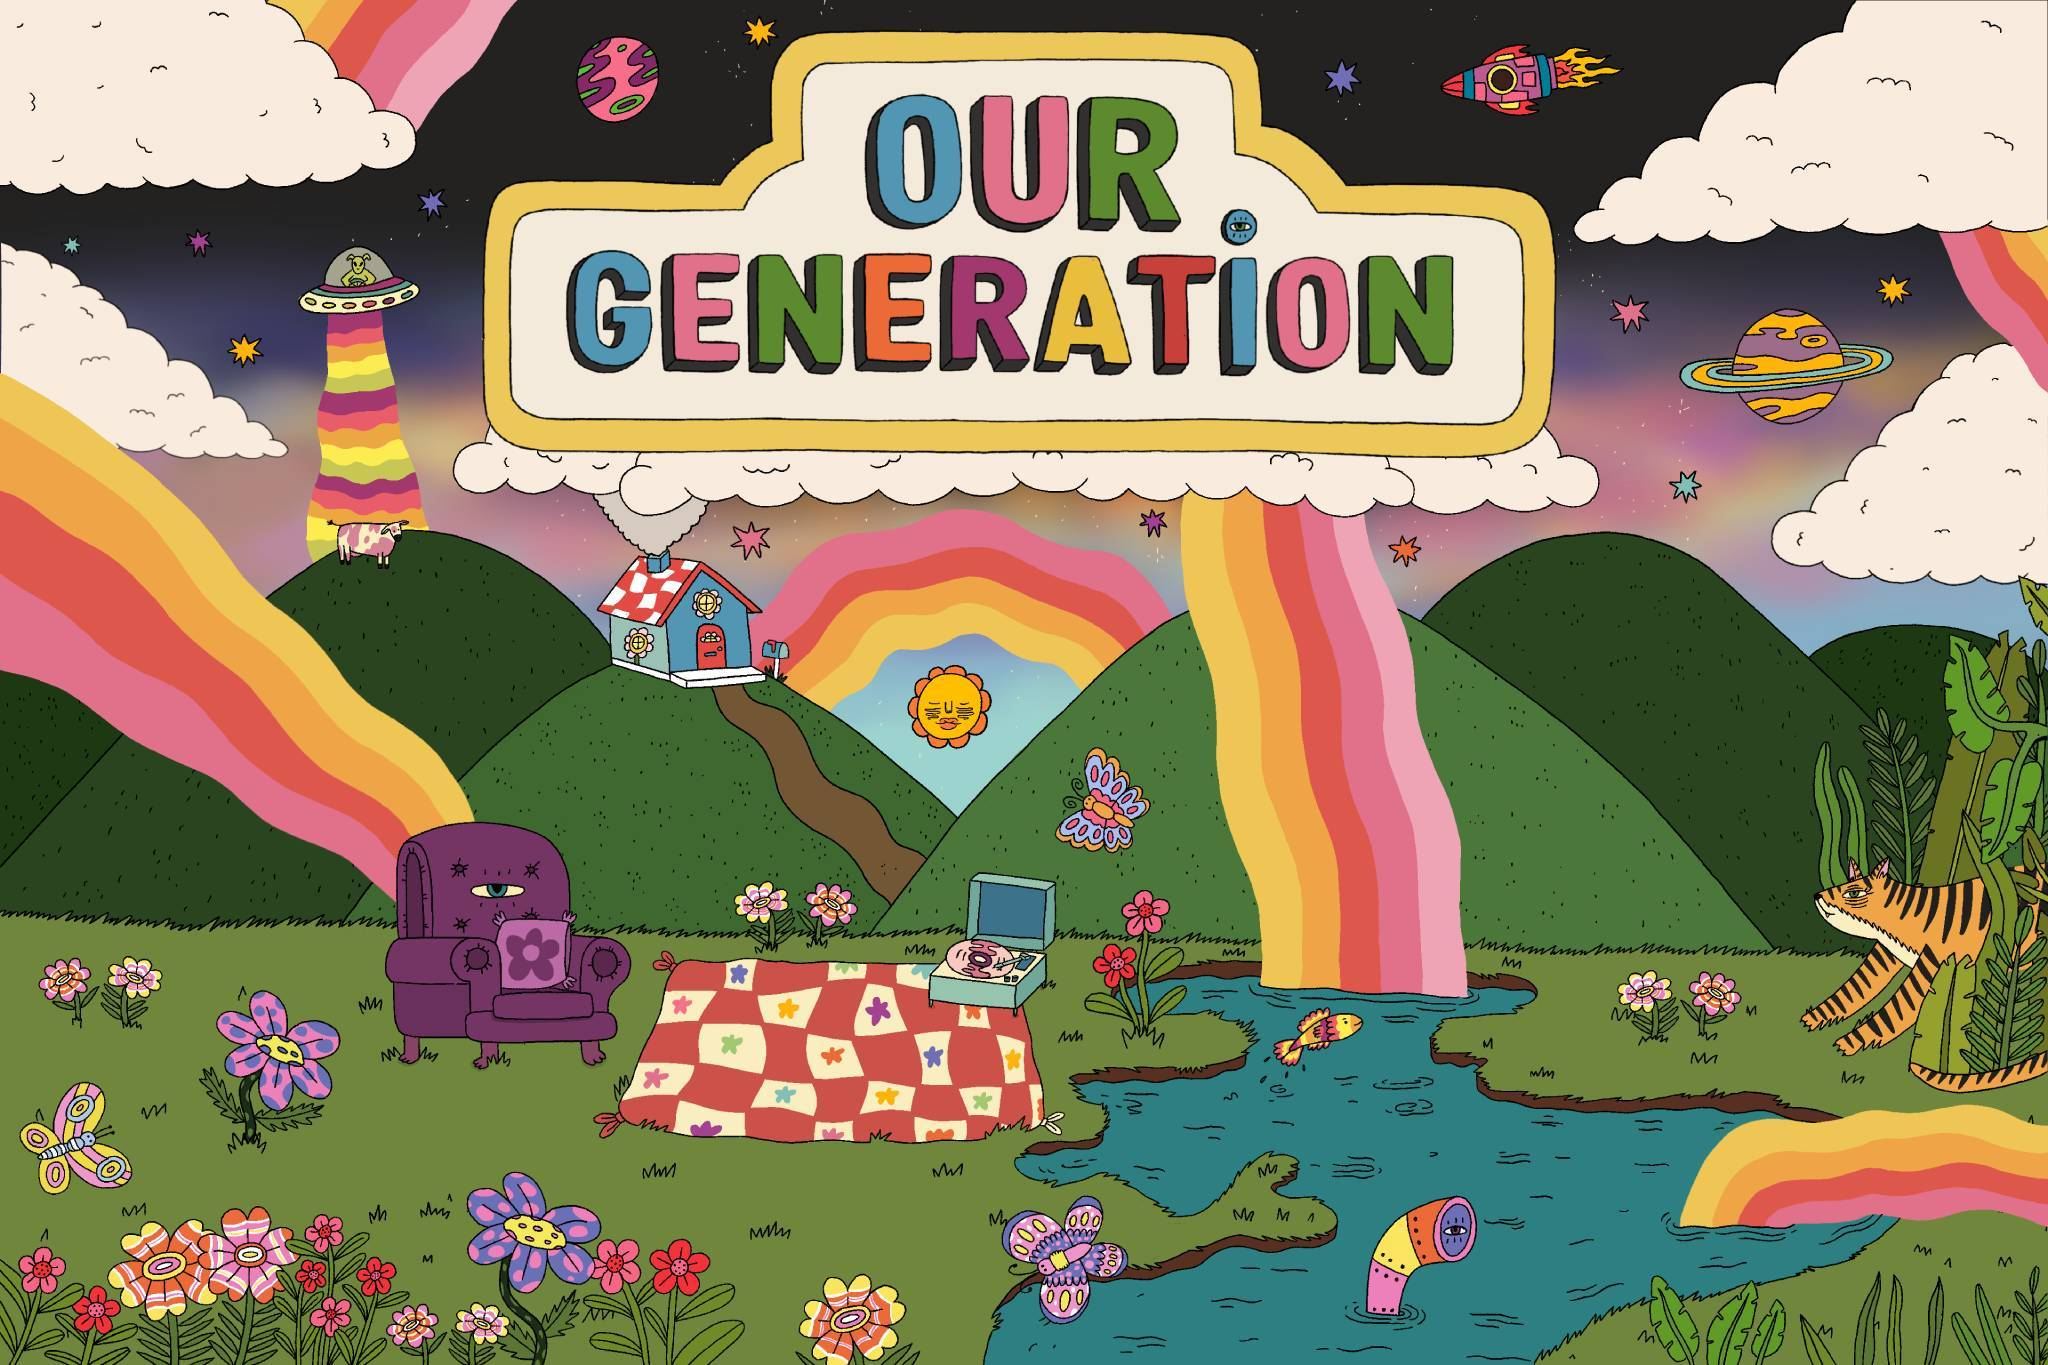 Beabadoobee, Thomas Headon and Biig Piig to takeover Spotify's Our Generation playlist